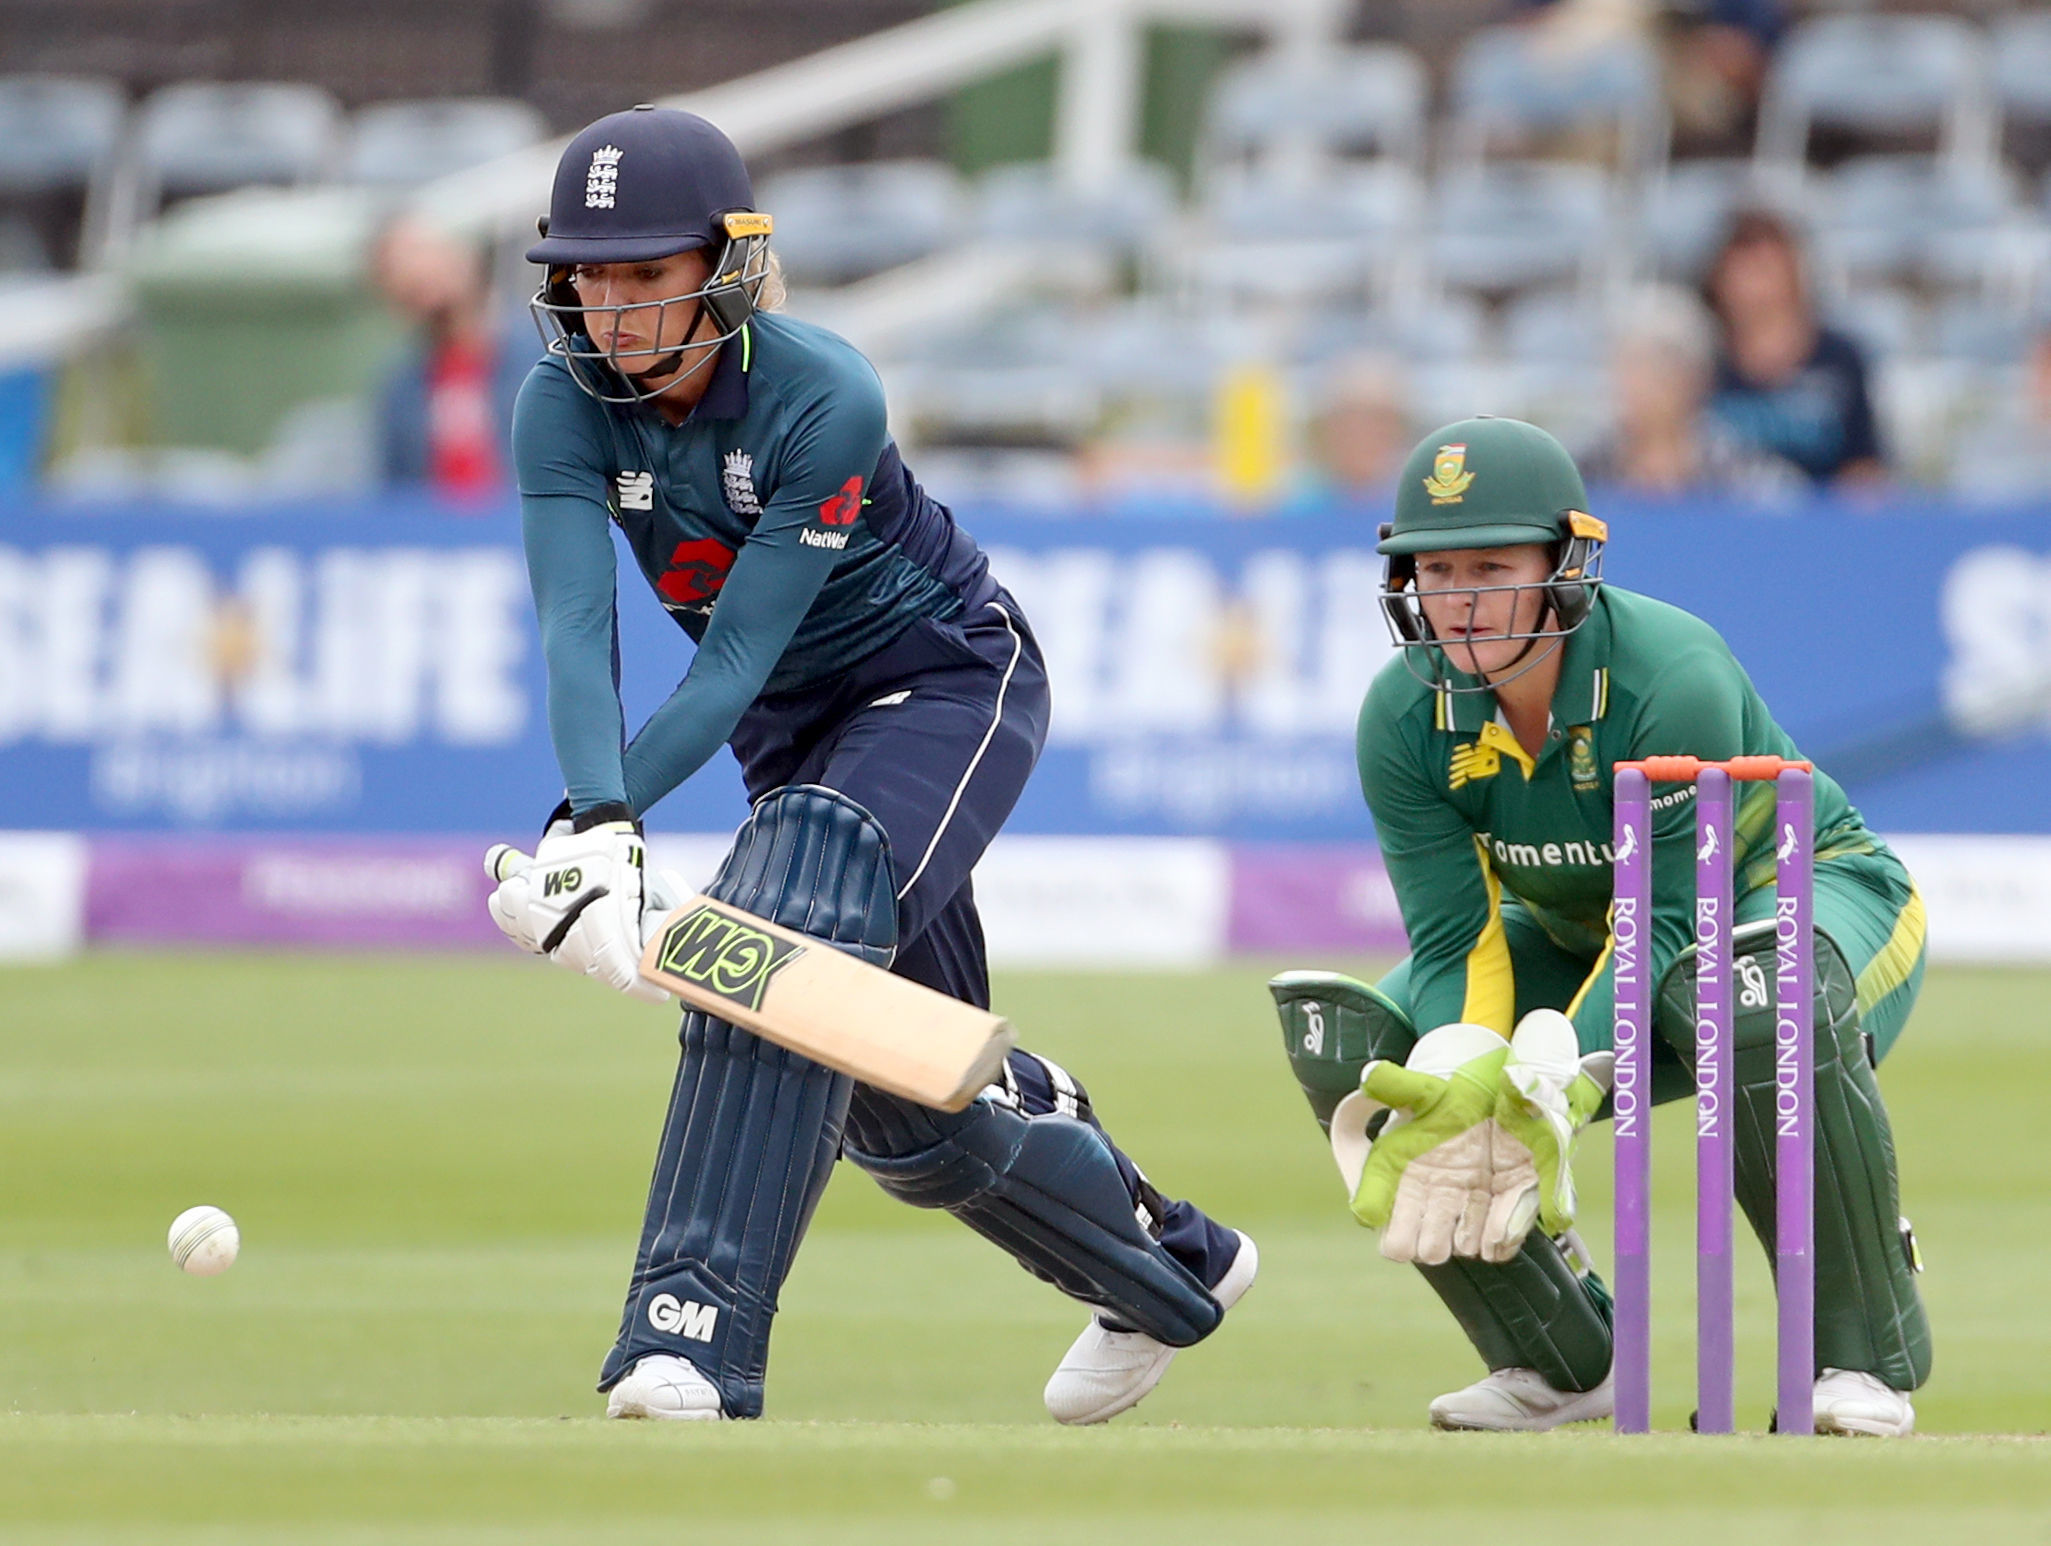 Sarah Taylor on her way to scoring 118 versus South Africa